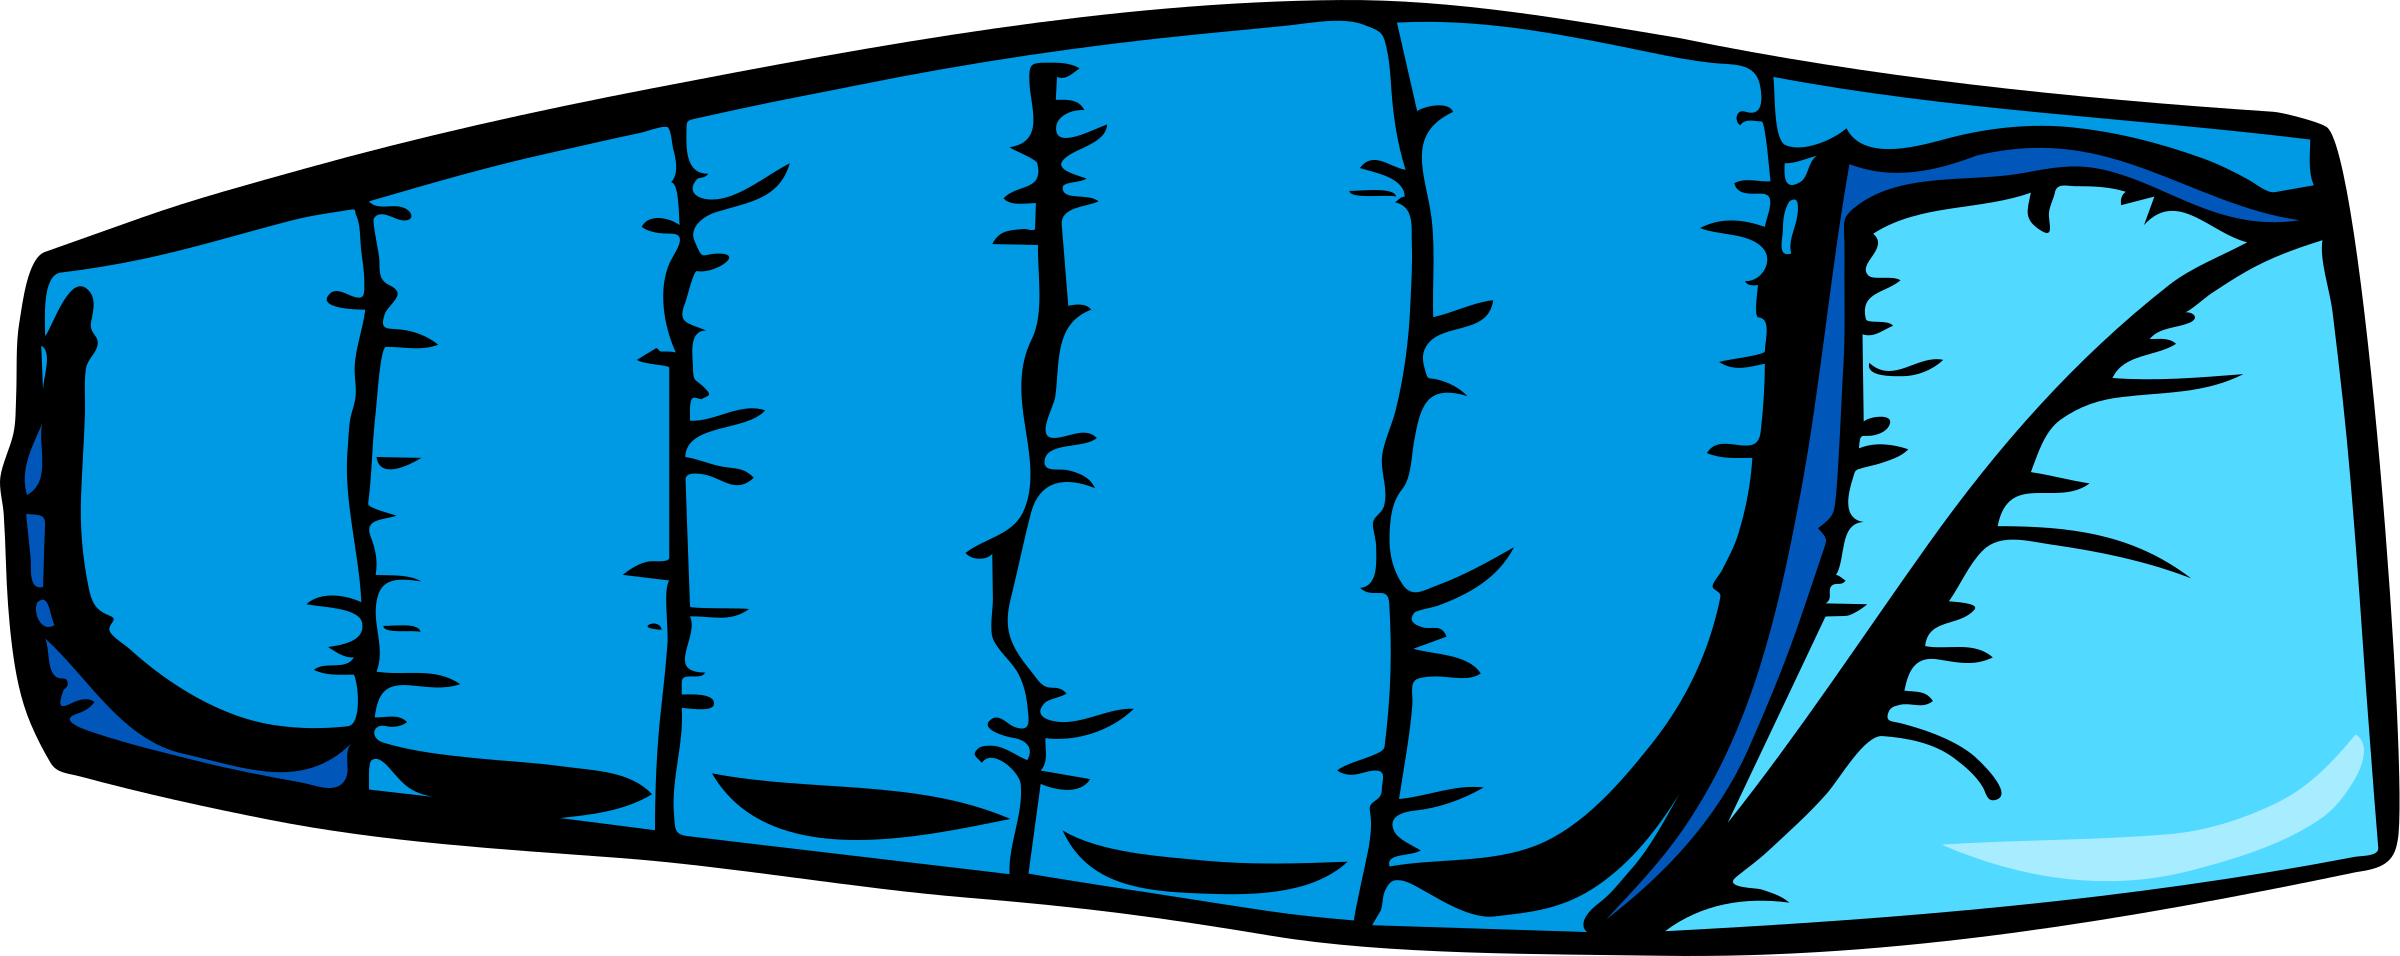 Sleeping bag png. Bags clipart blue girly